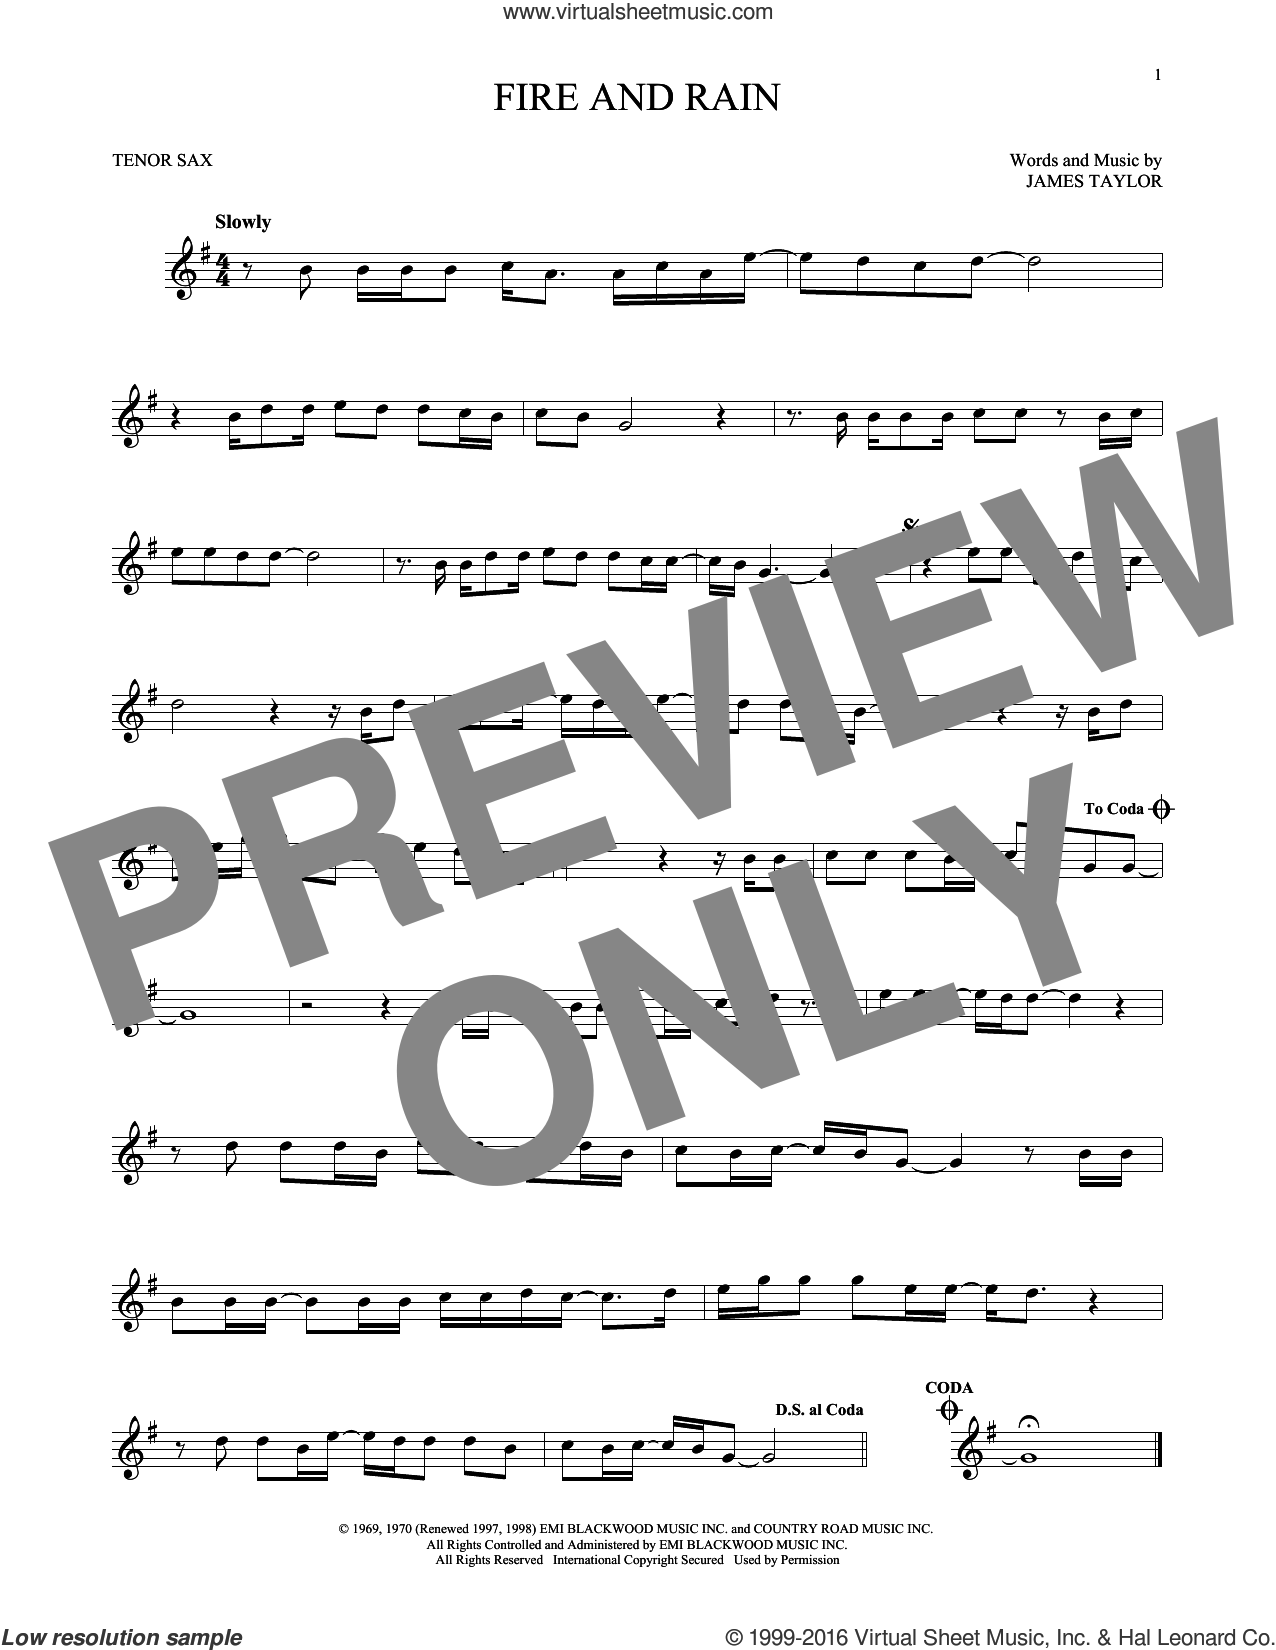 Fire And Rain sheet music for tenor saxophone solo by James Taylor. Score Image Preview.